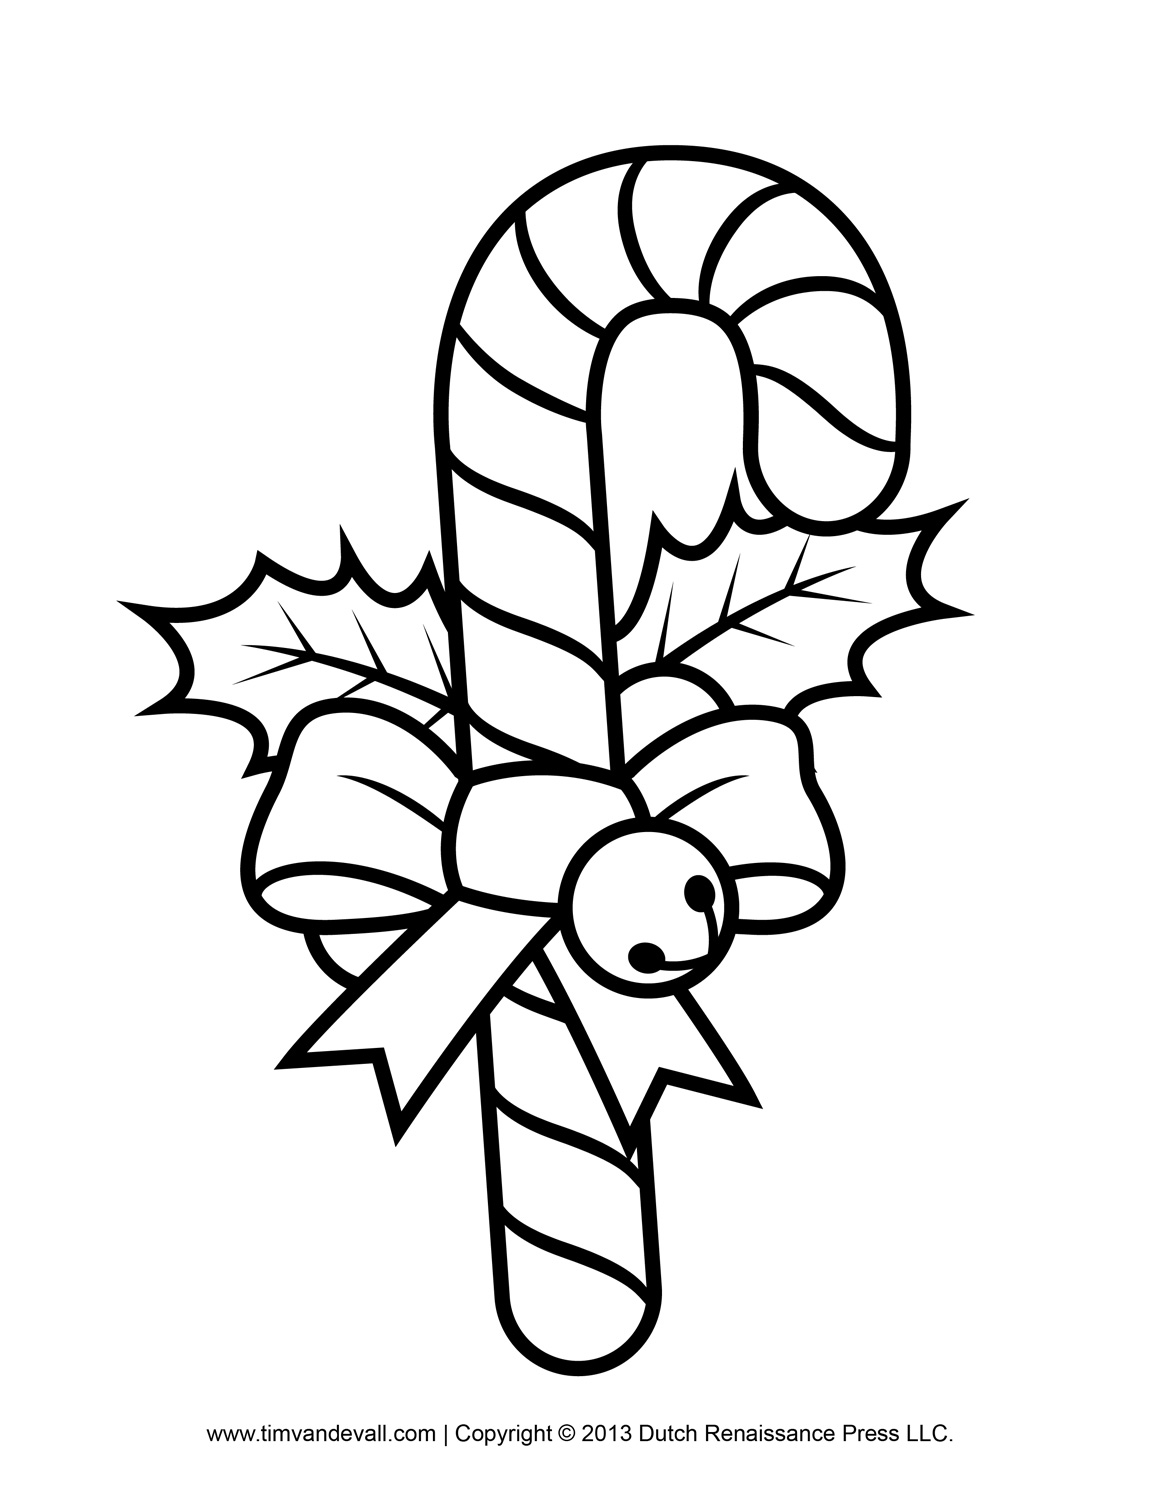 candy-cane coloring page,printable,coloring pages